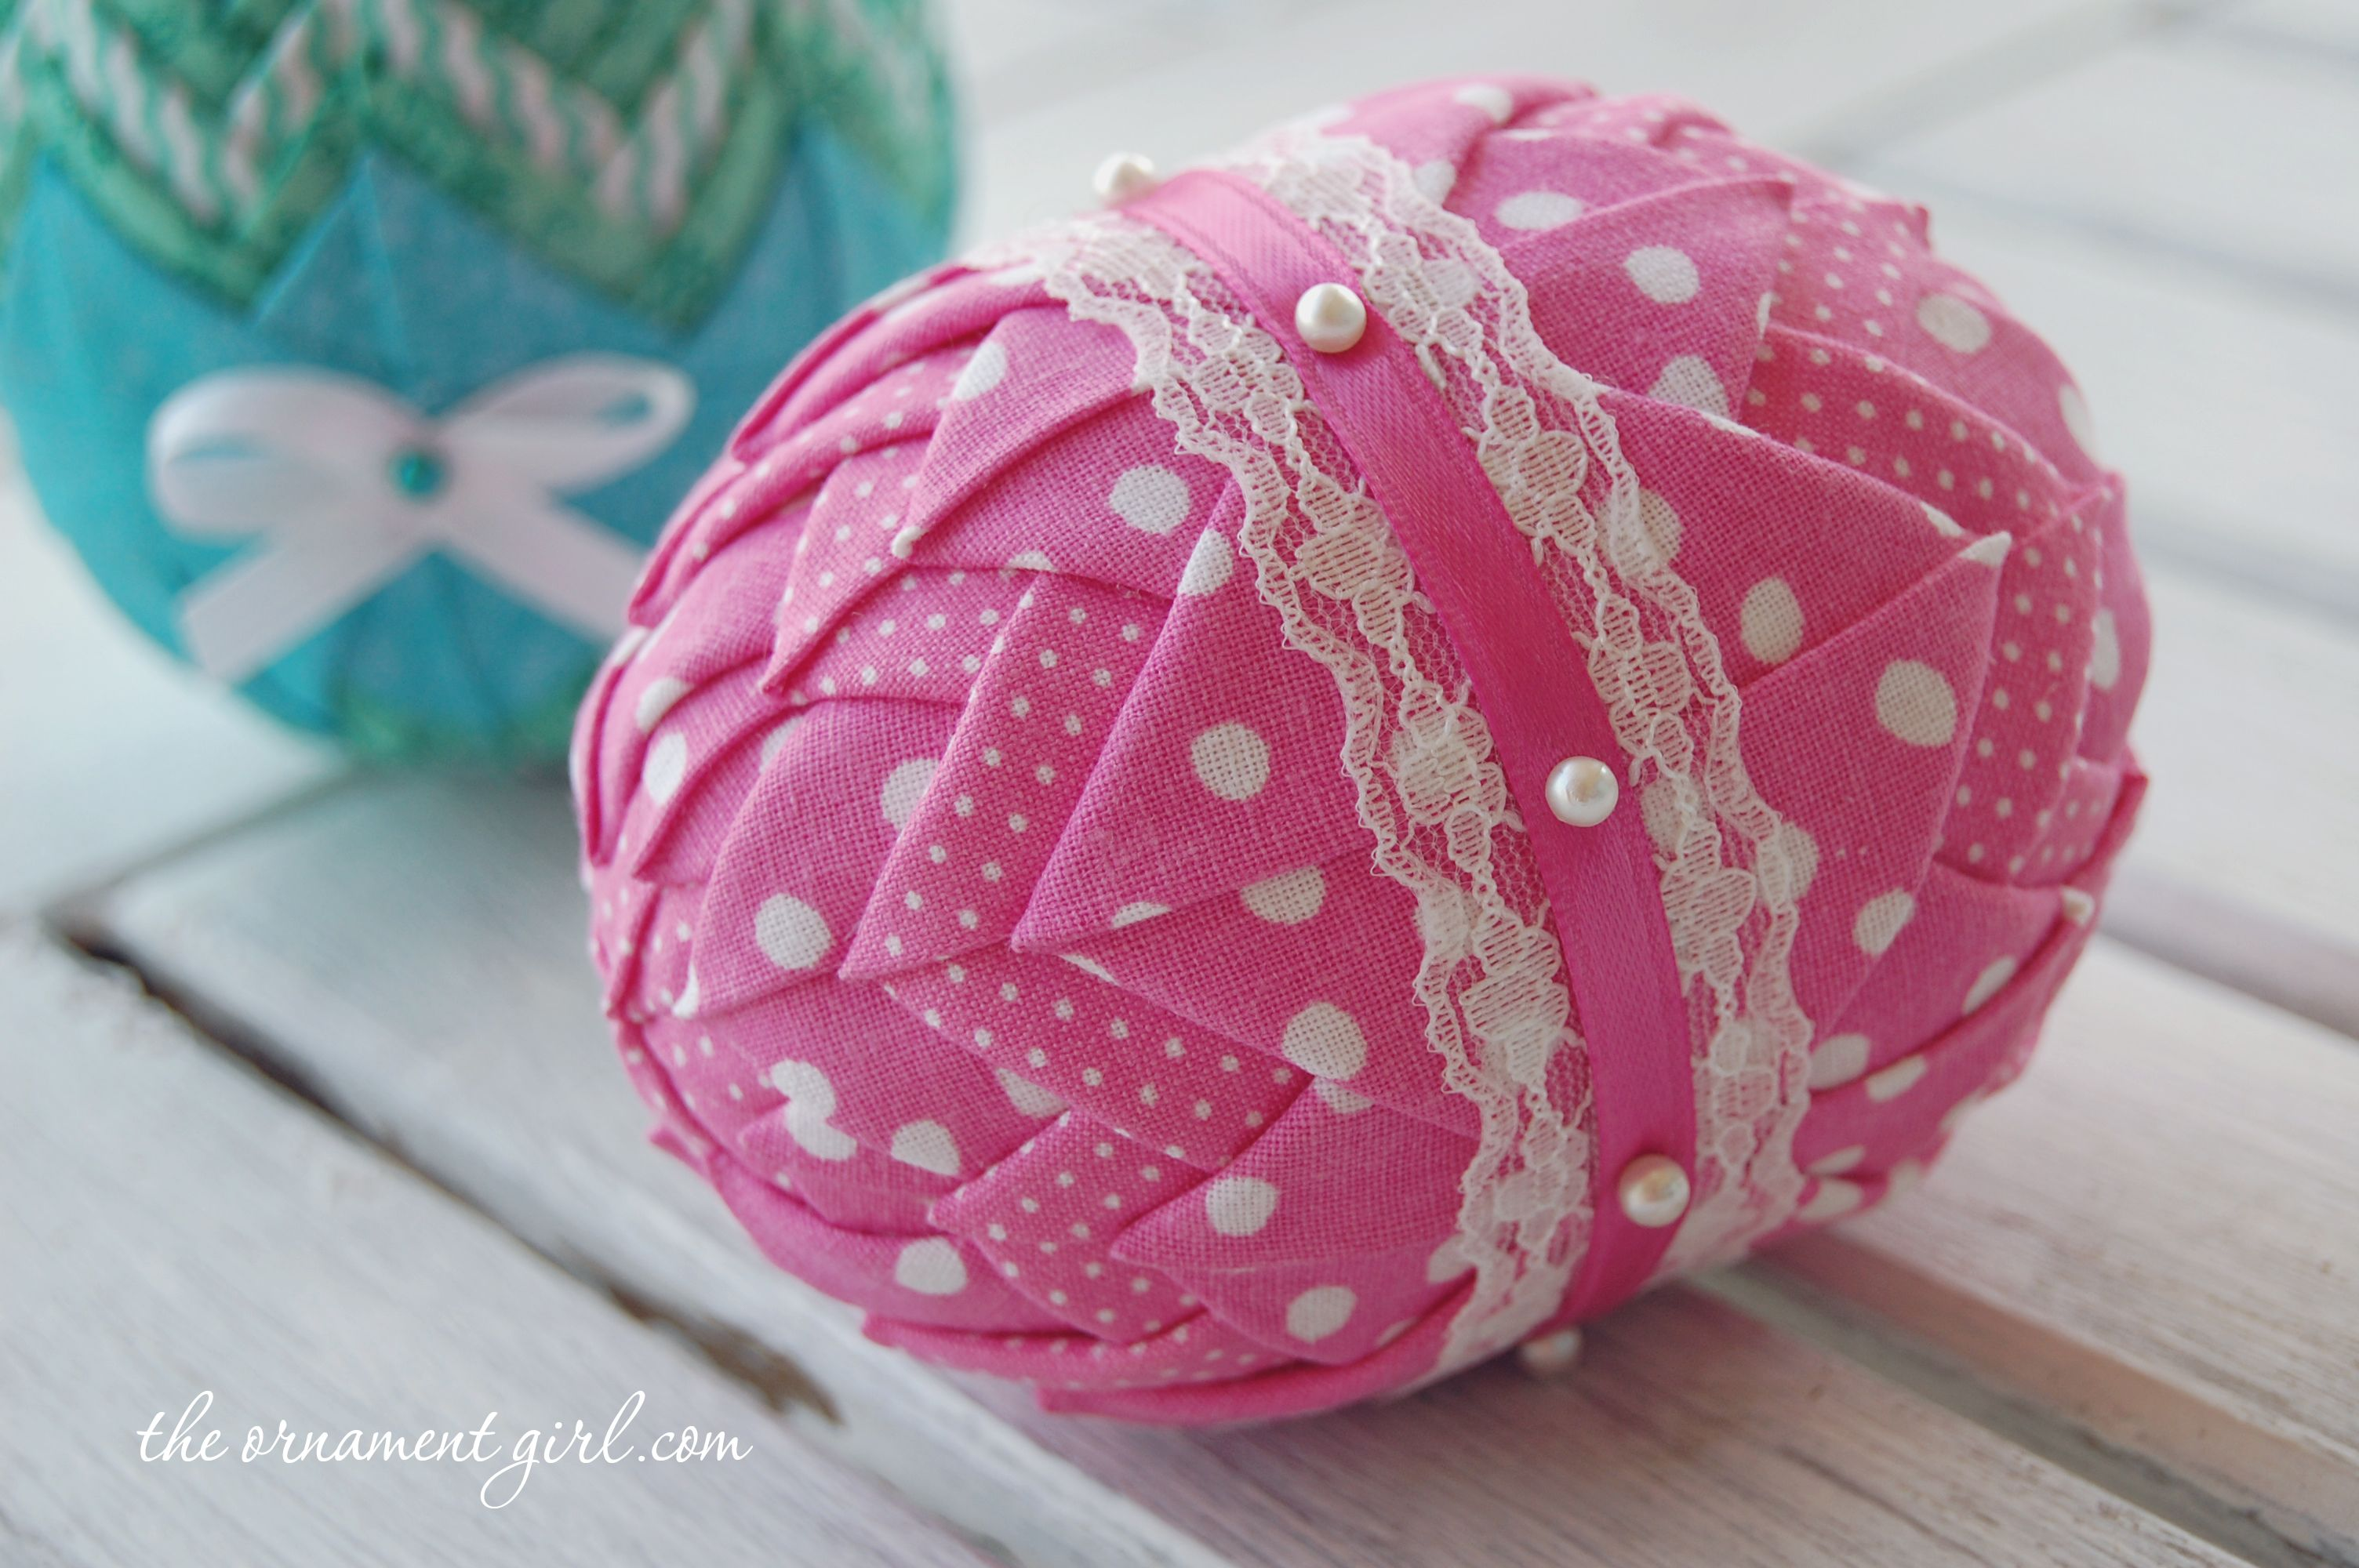 Folded Fabric Patterns - Quilted Fabric Easter Egg Pattern -